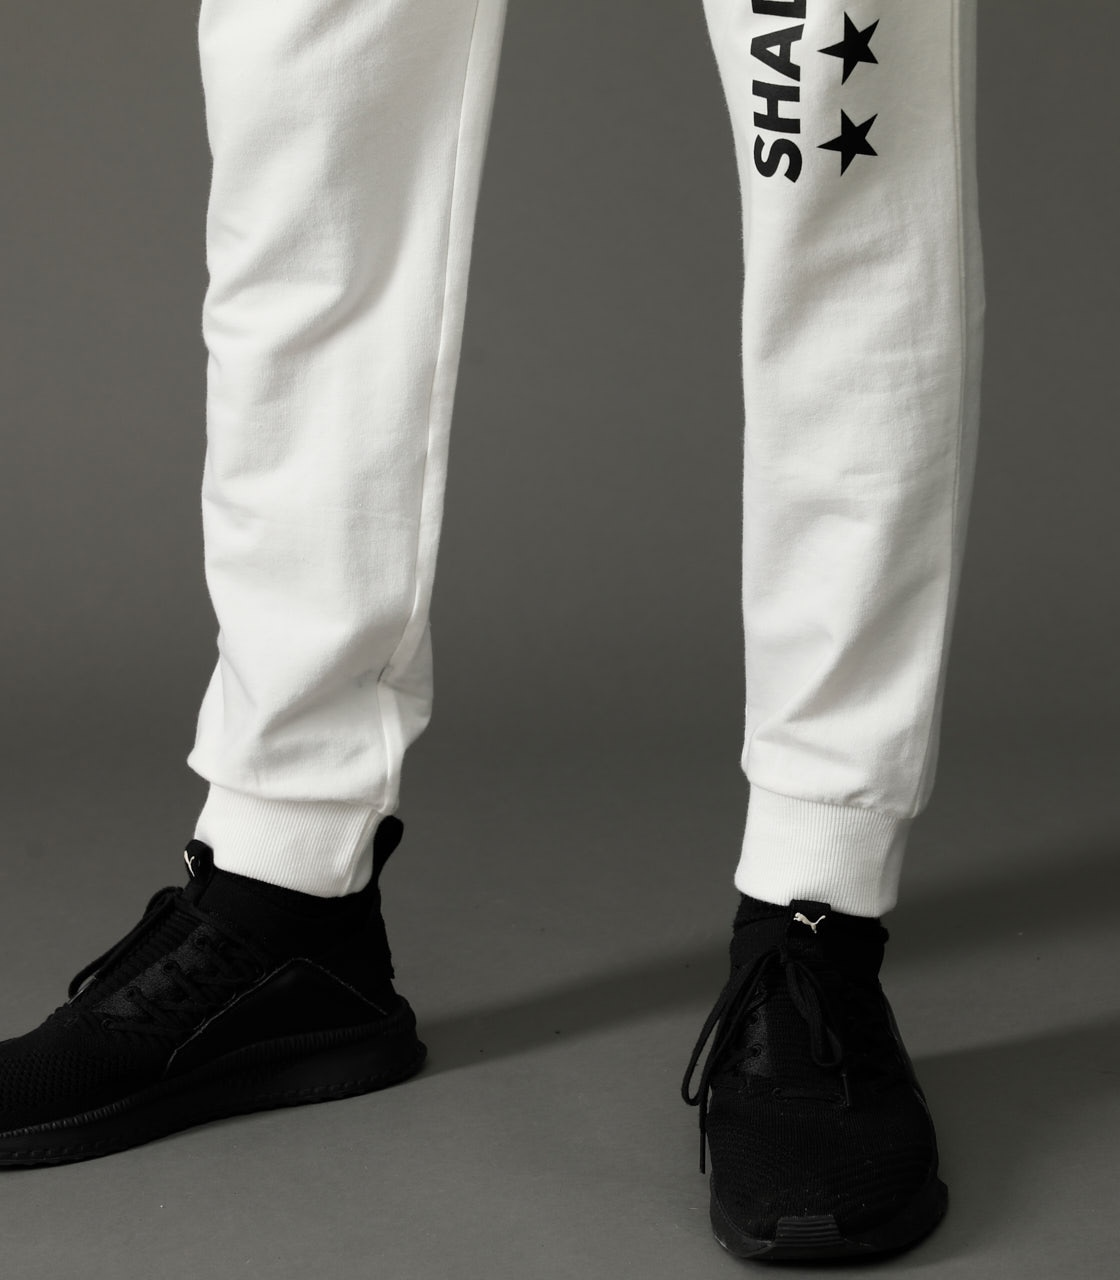 CLUB AZUL STRETCH PANTS 詳細画像 WHT 7